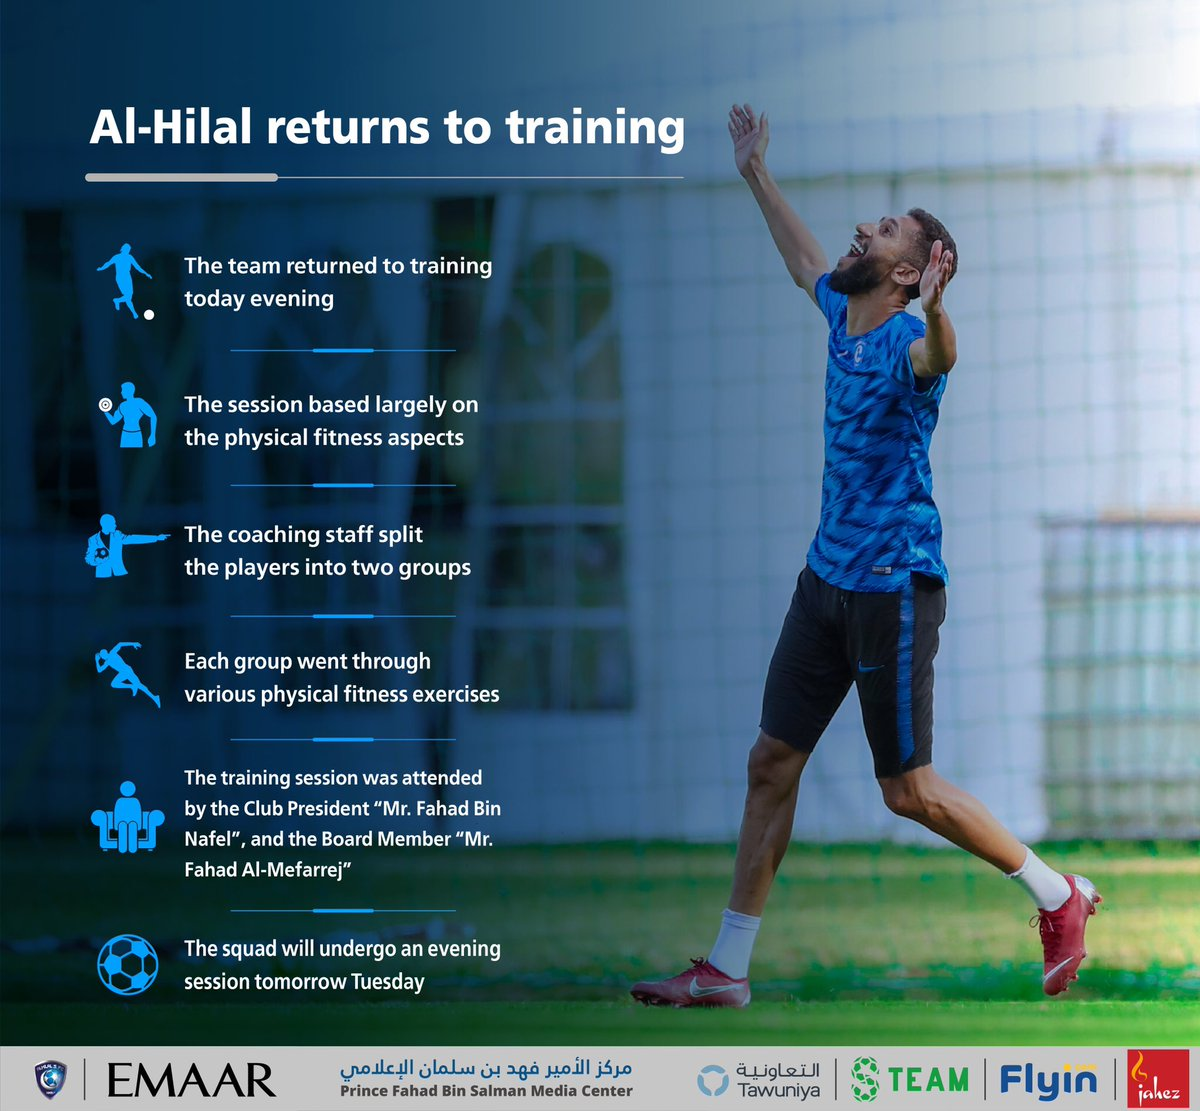 #AlHilal returns to training   #AlHilal_Infographic <br>http://pic.twitter.com/64oALmdK11